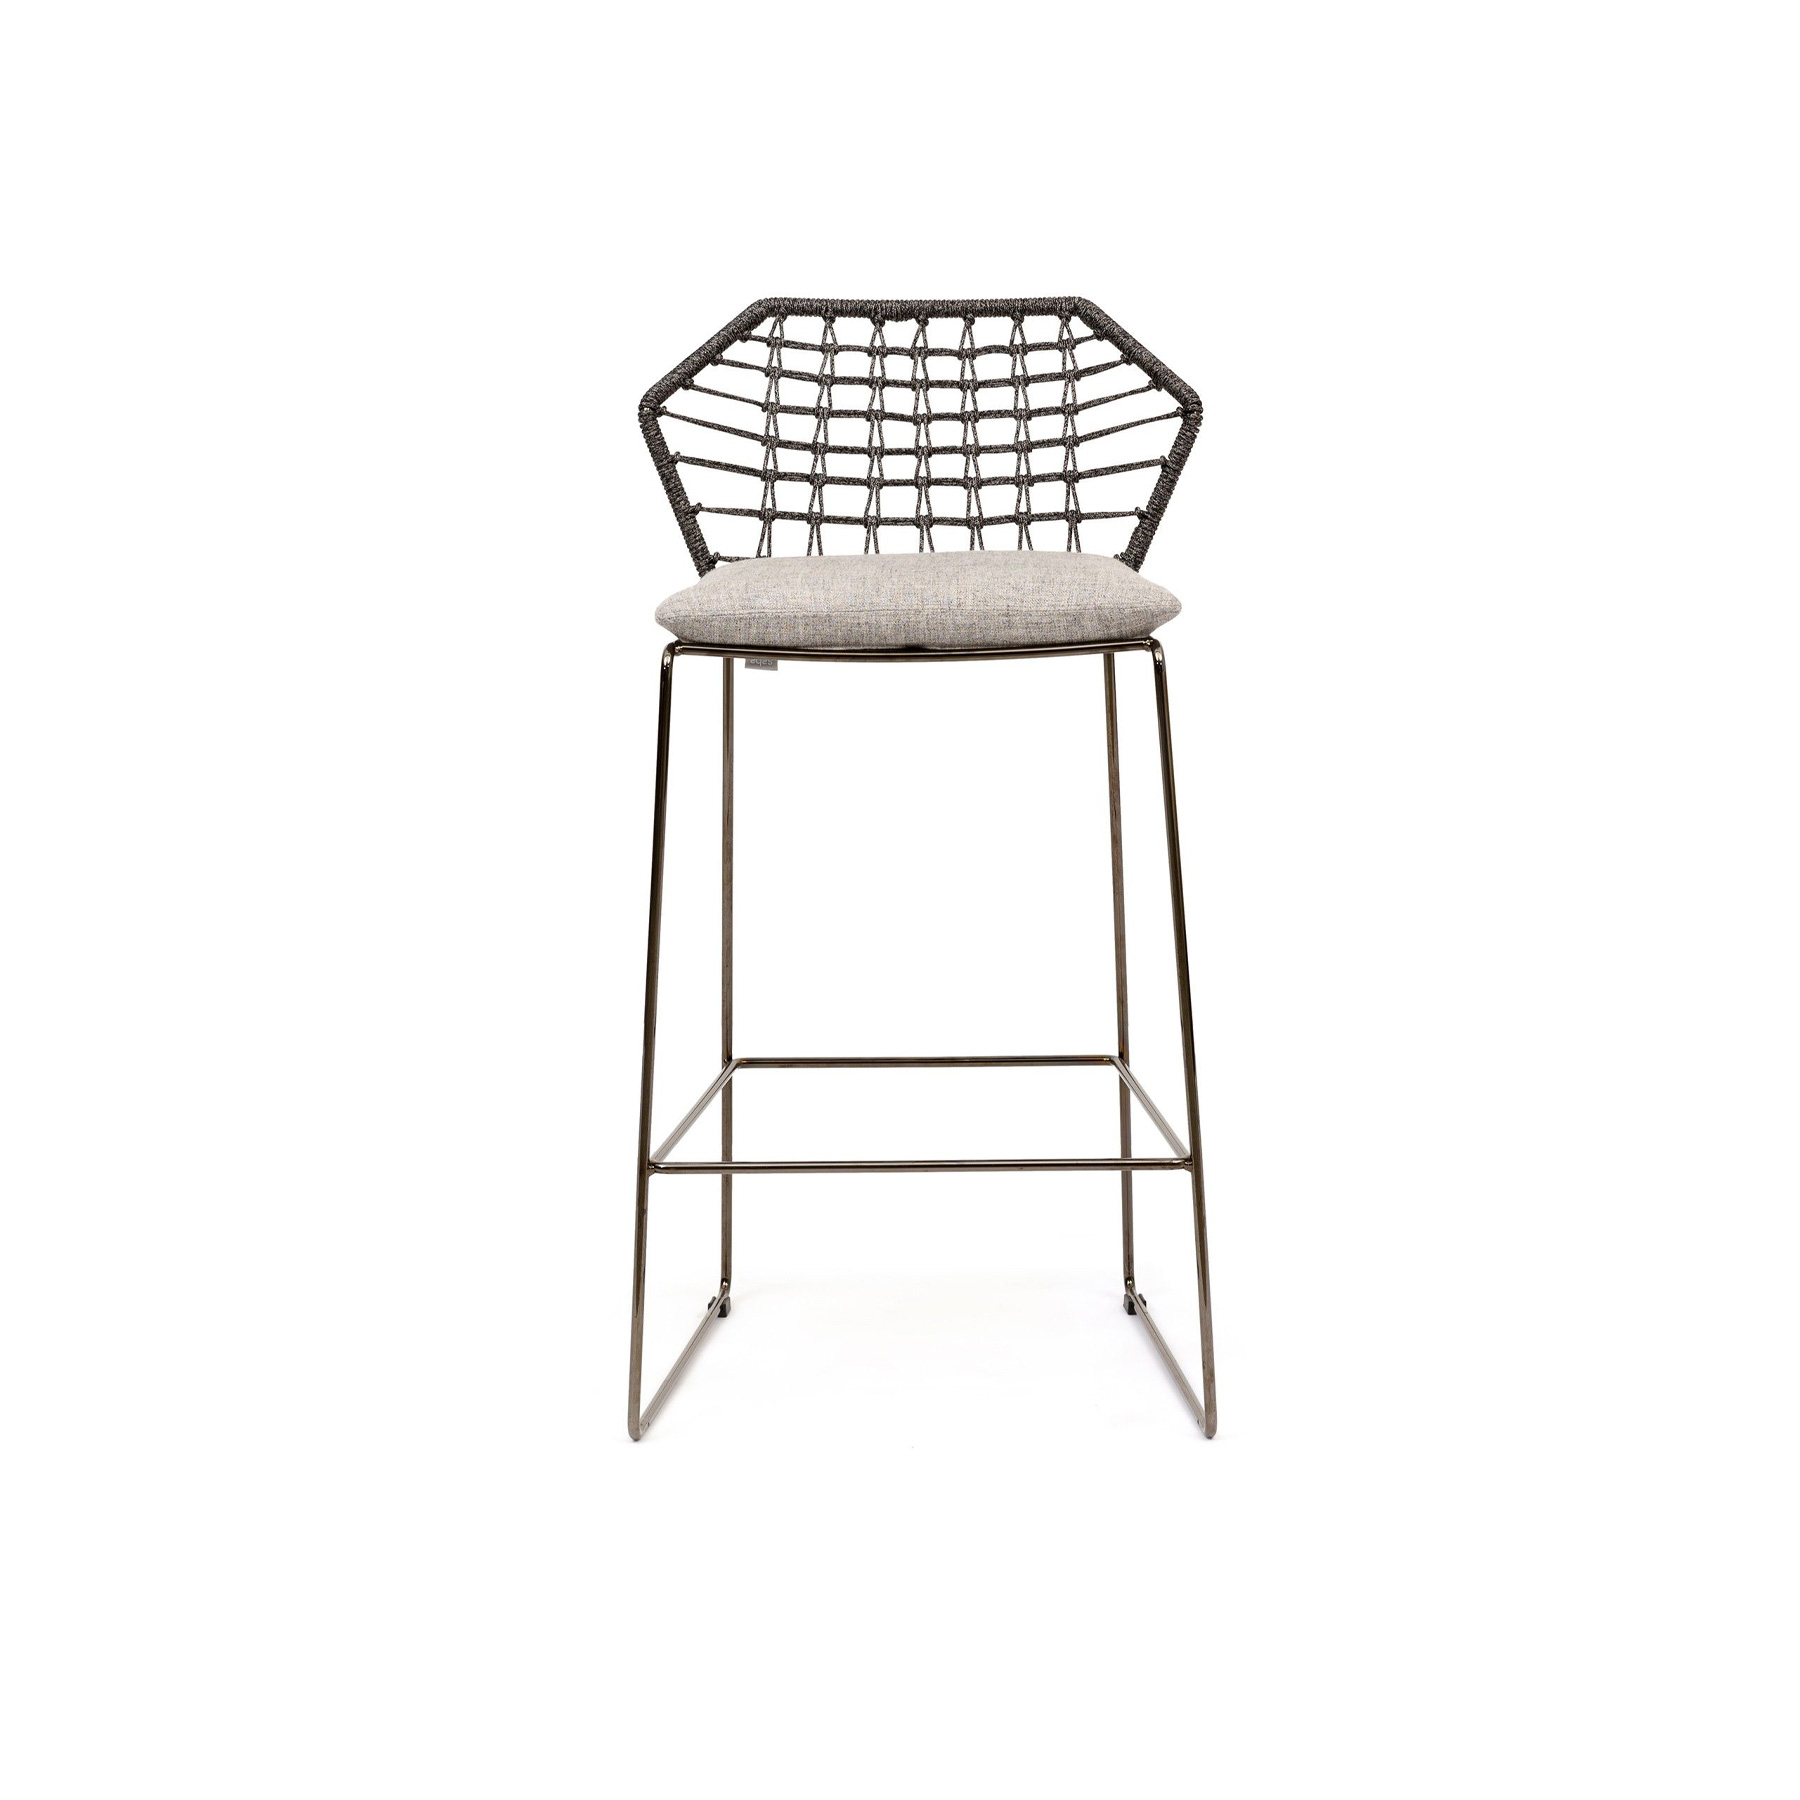 New York Soleil Garden High Stool - New York Soleil is a high fabric garden stool, part of the homonymous collection.‎